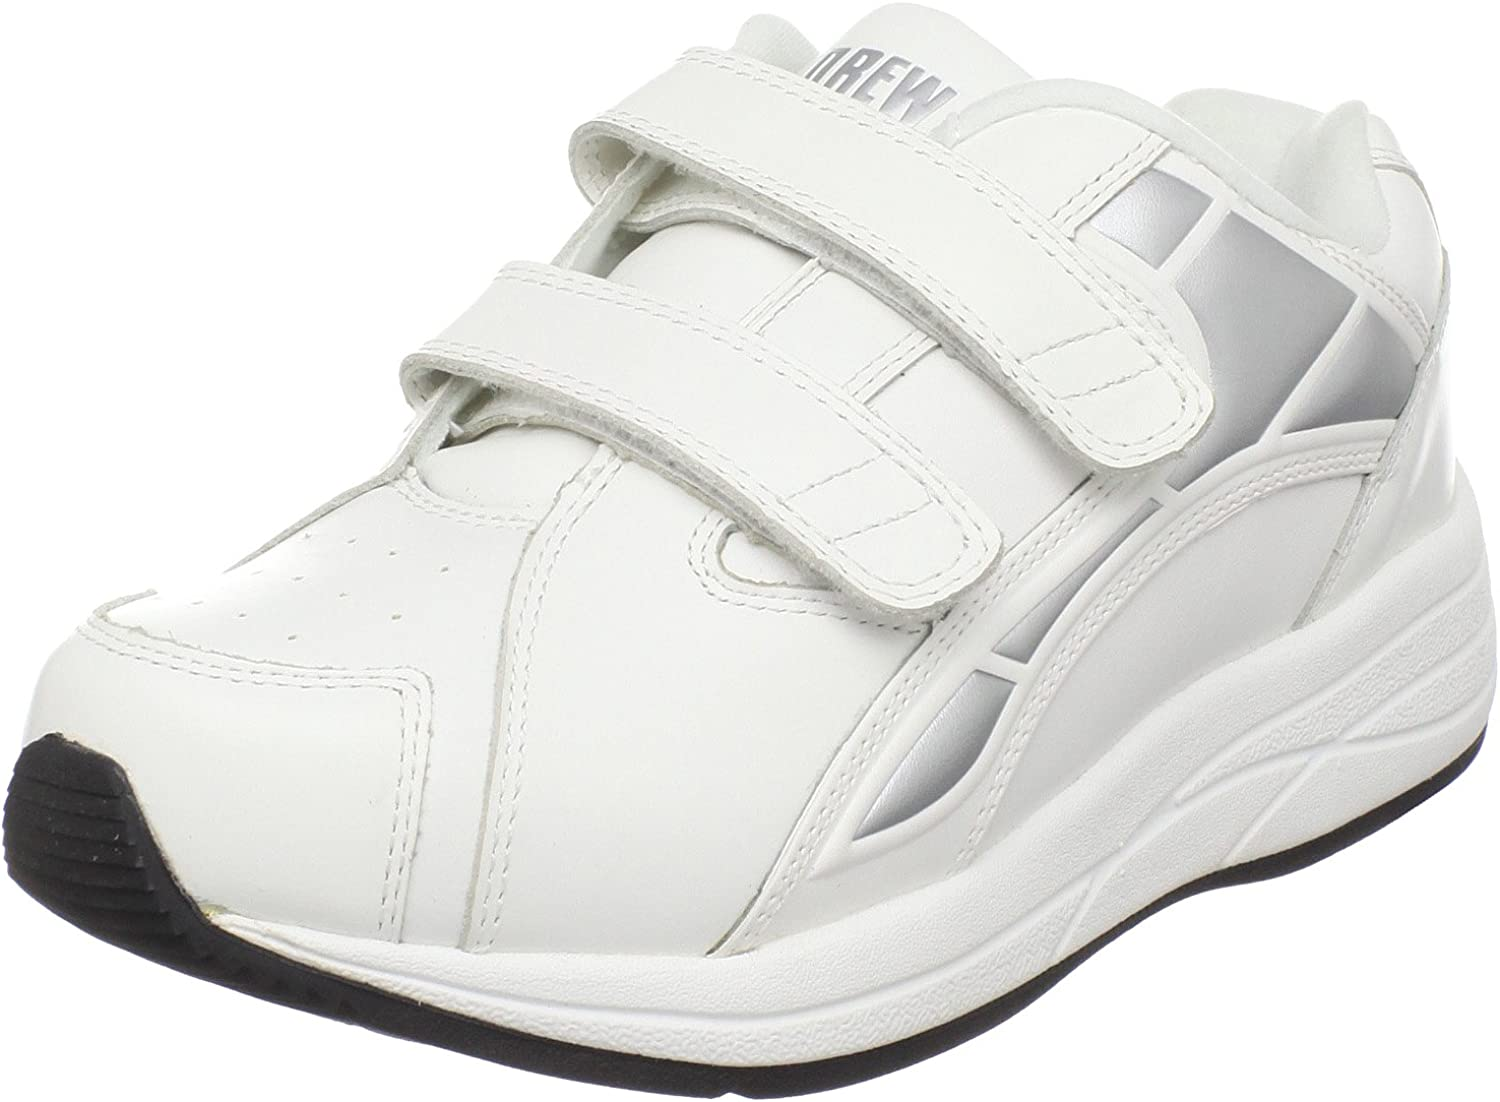 Drew shoes Women's Motion V Sneaker